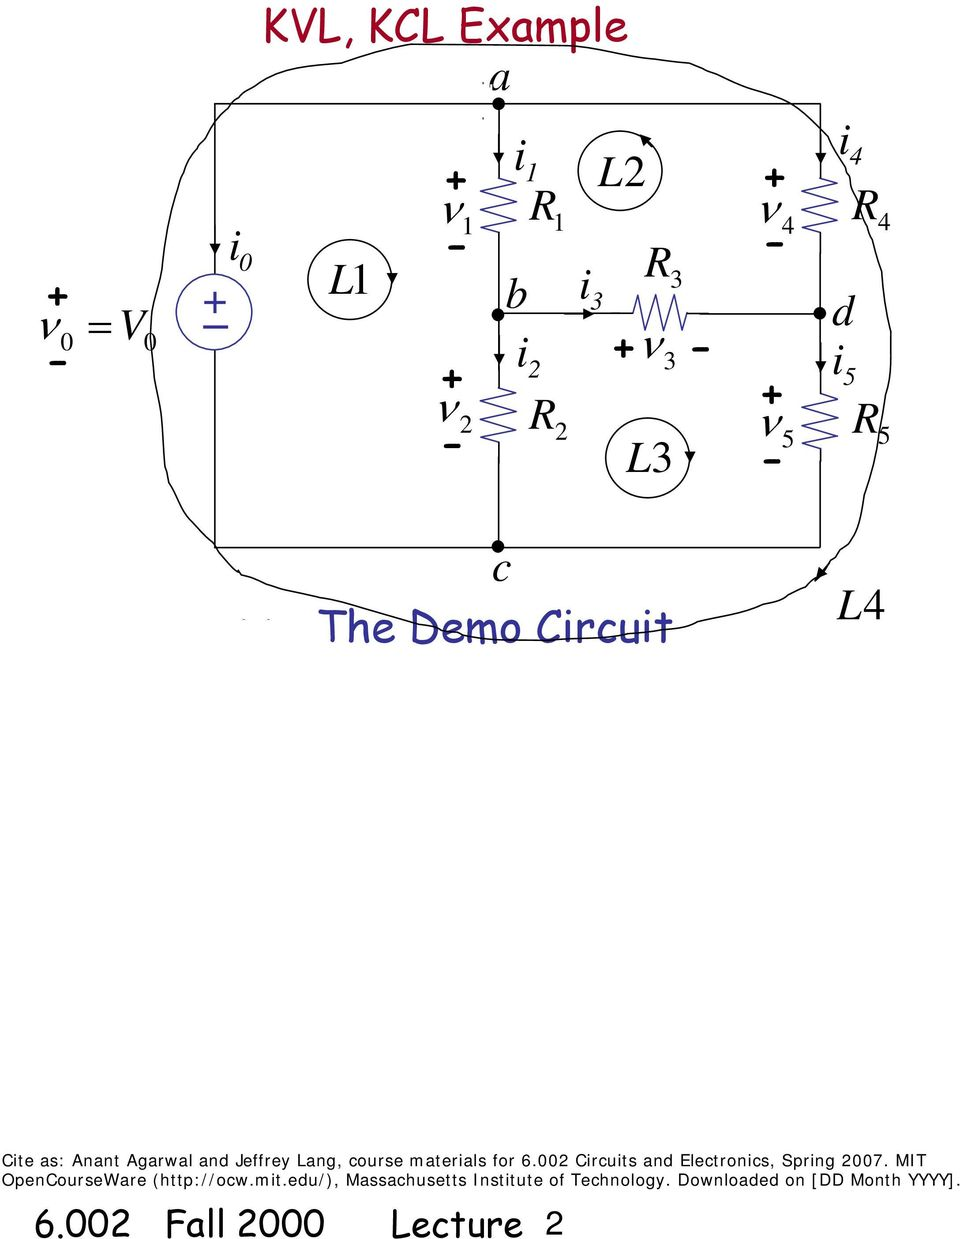 Circuits And Electronics Basic Circuit Analysis Method Kvl Kcl Electrical Solving Technique Loop Mesh Current Agarwal Jffry Lang Cours Matrials For 6